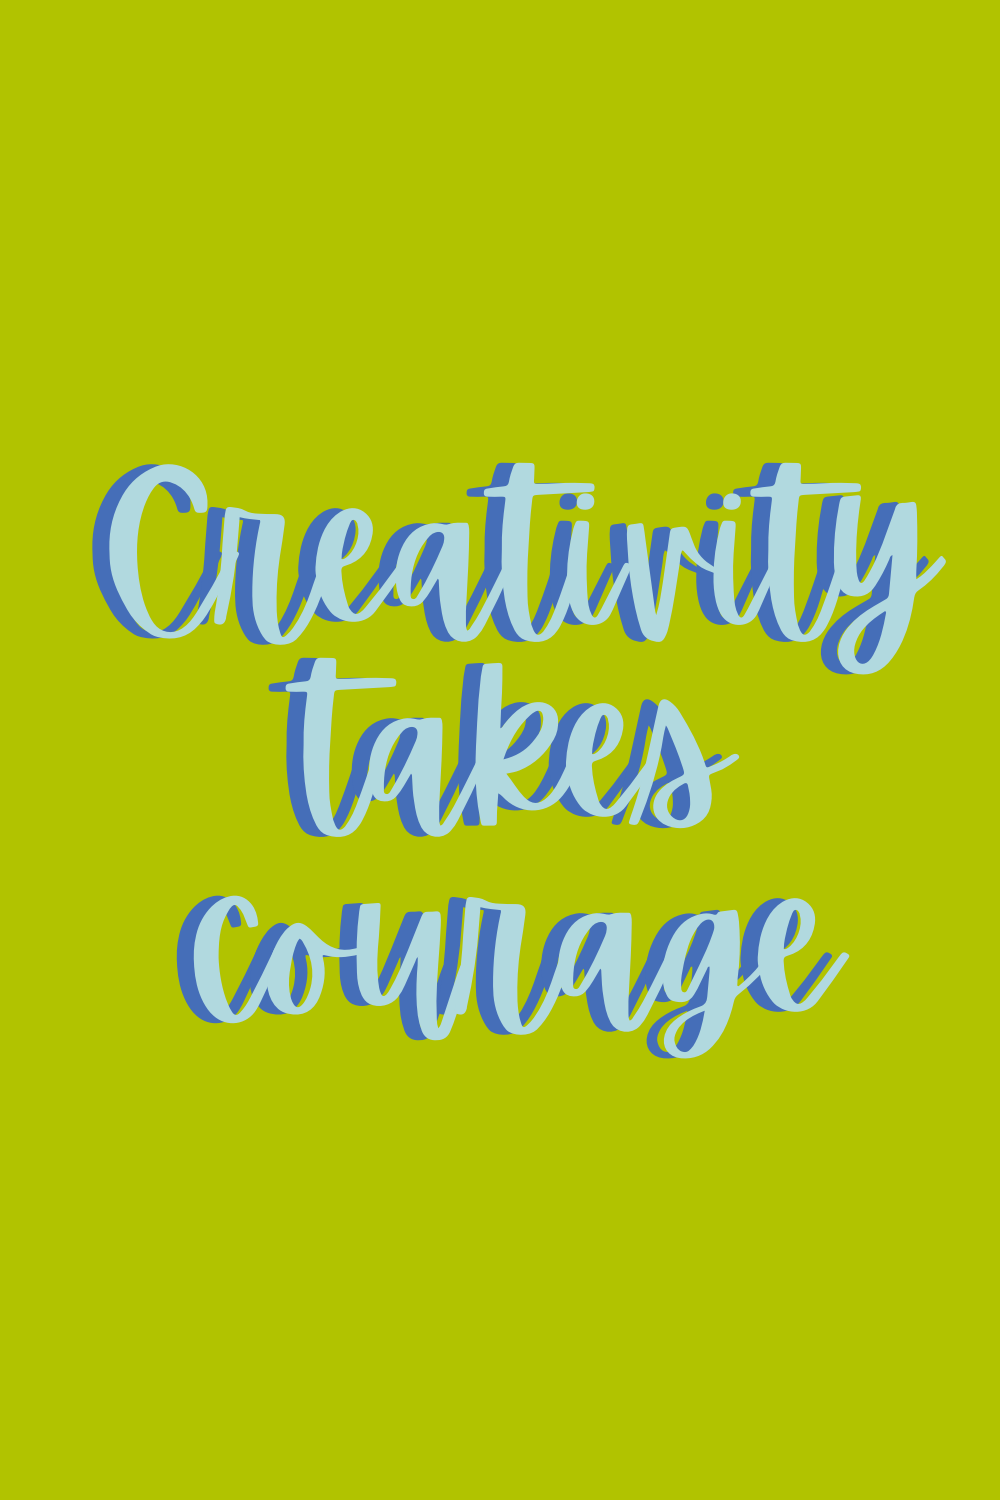 Creativity Quotes For New Year Planning